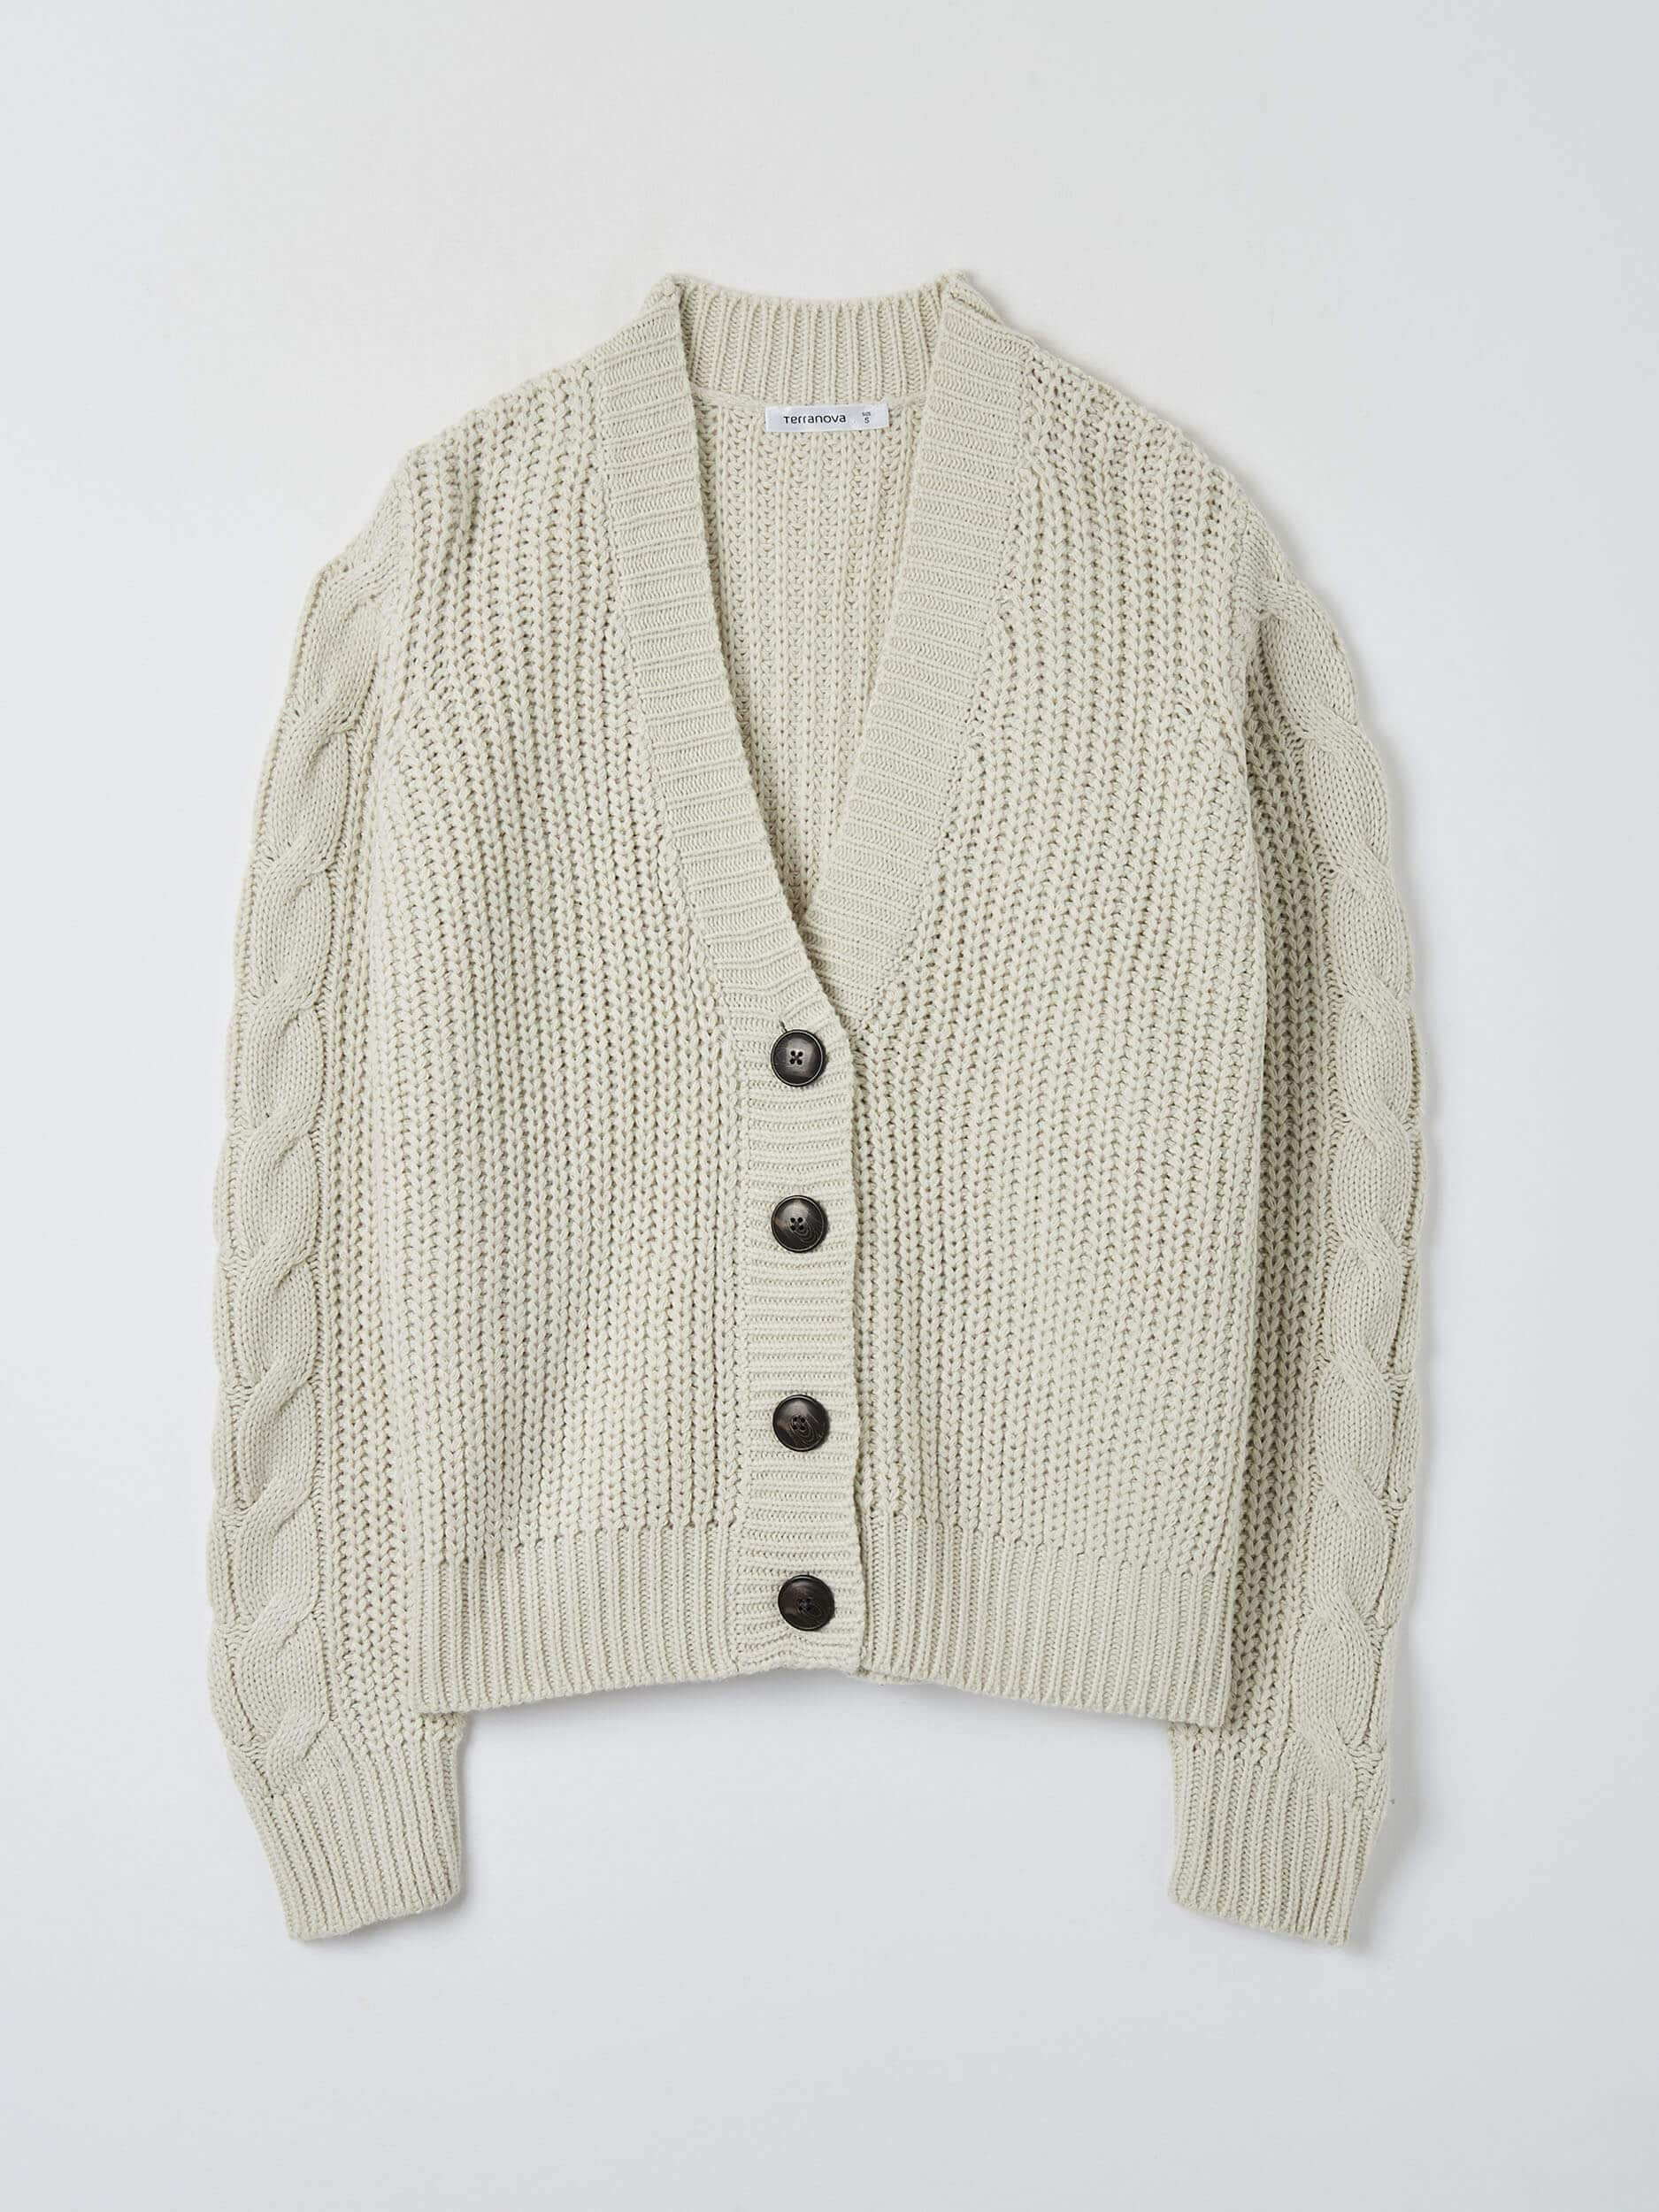 Var White Woll Cable Knit Cardigan Buy Online Terranova